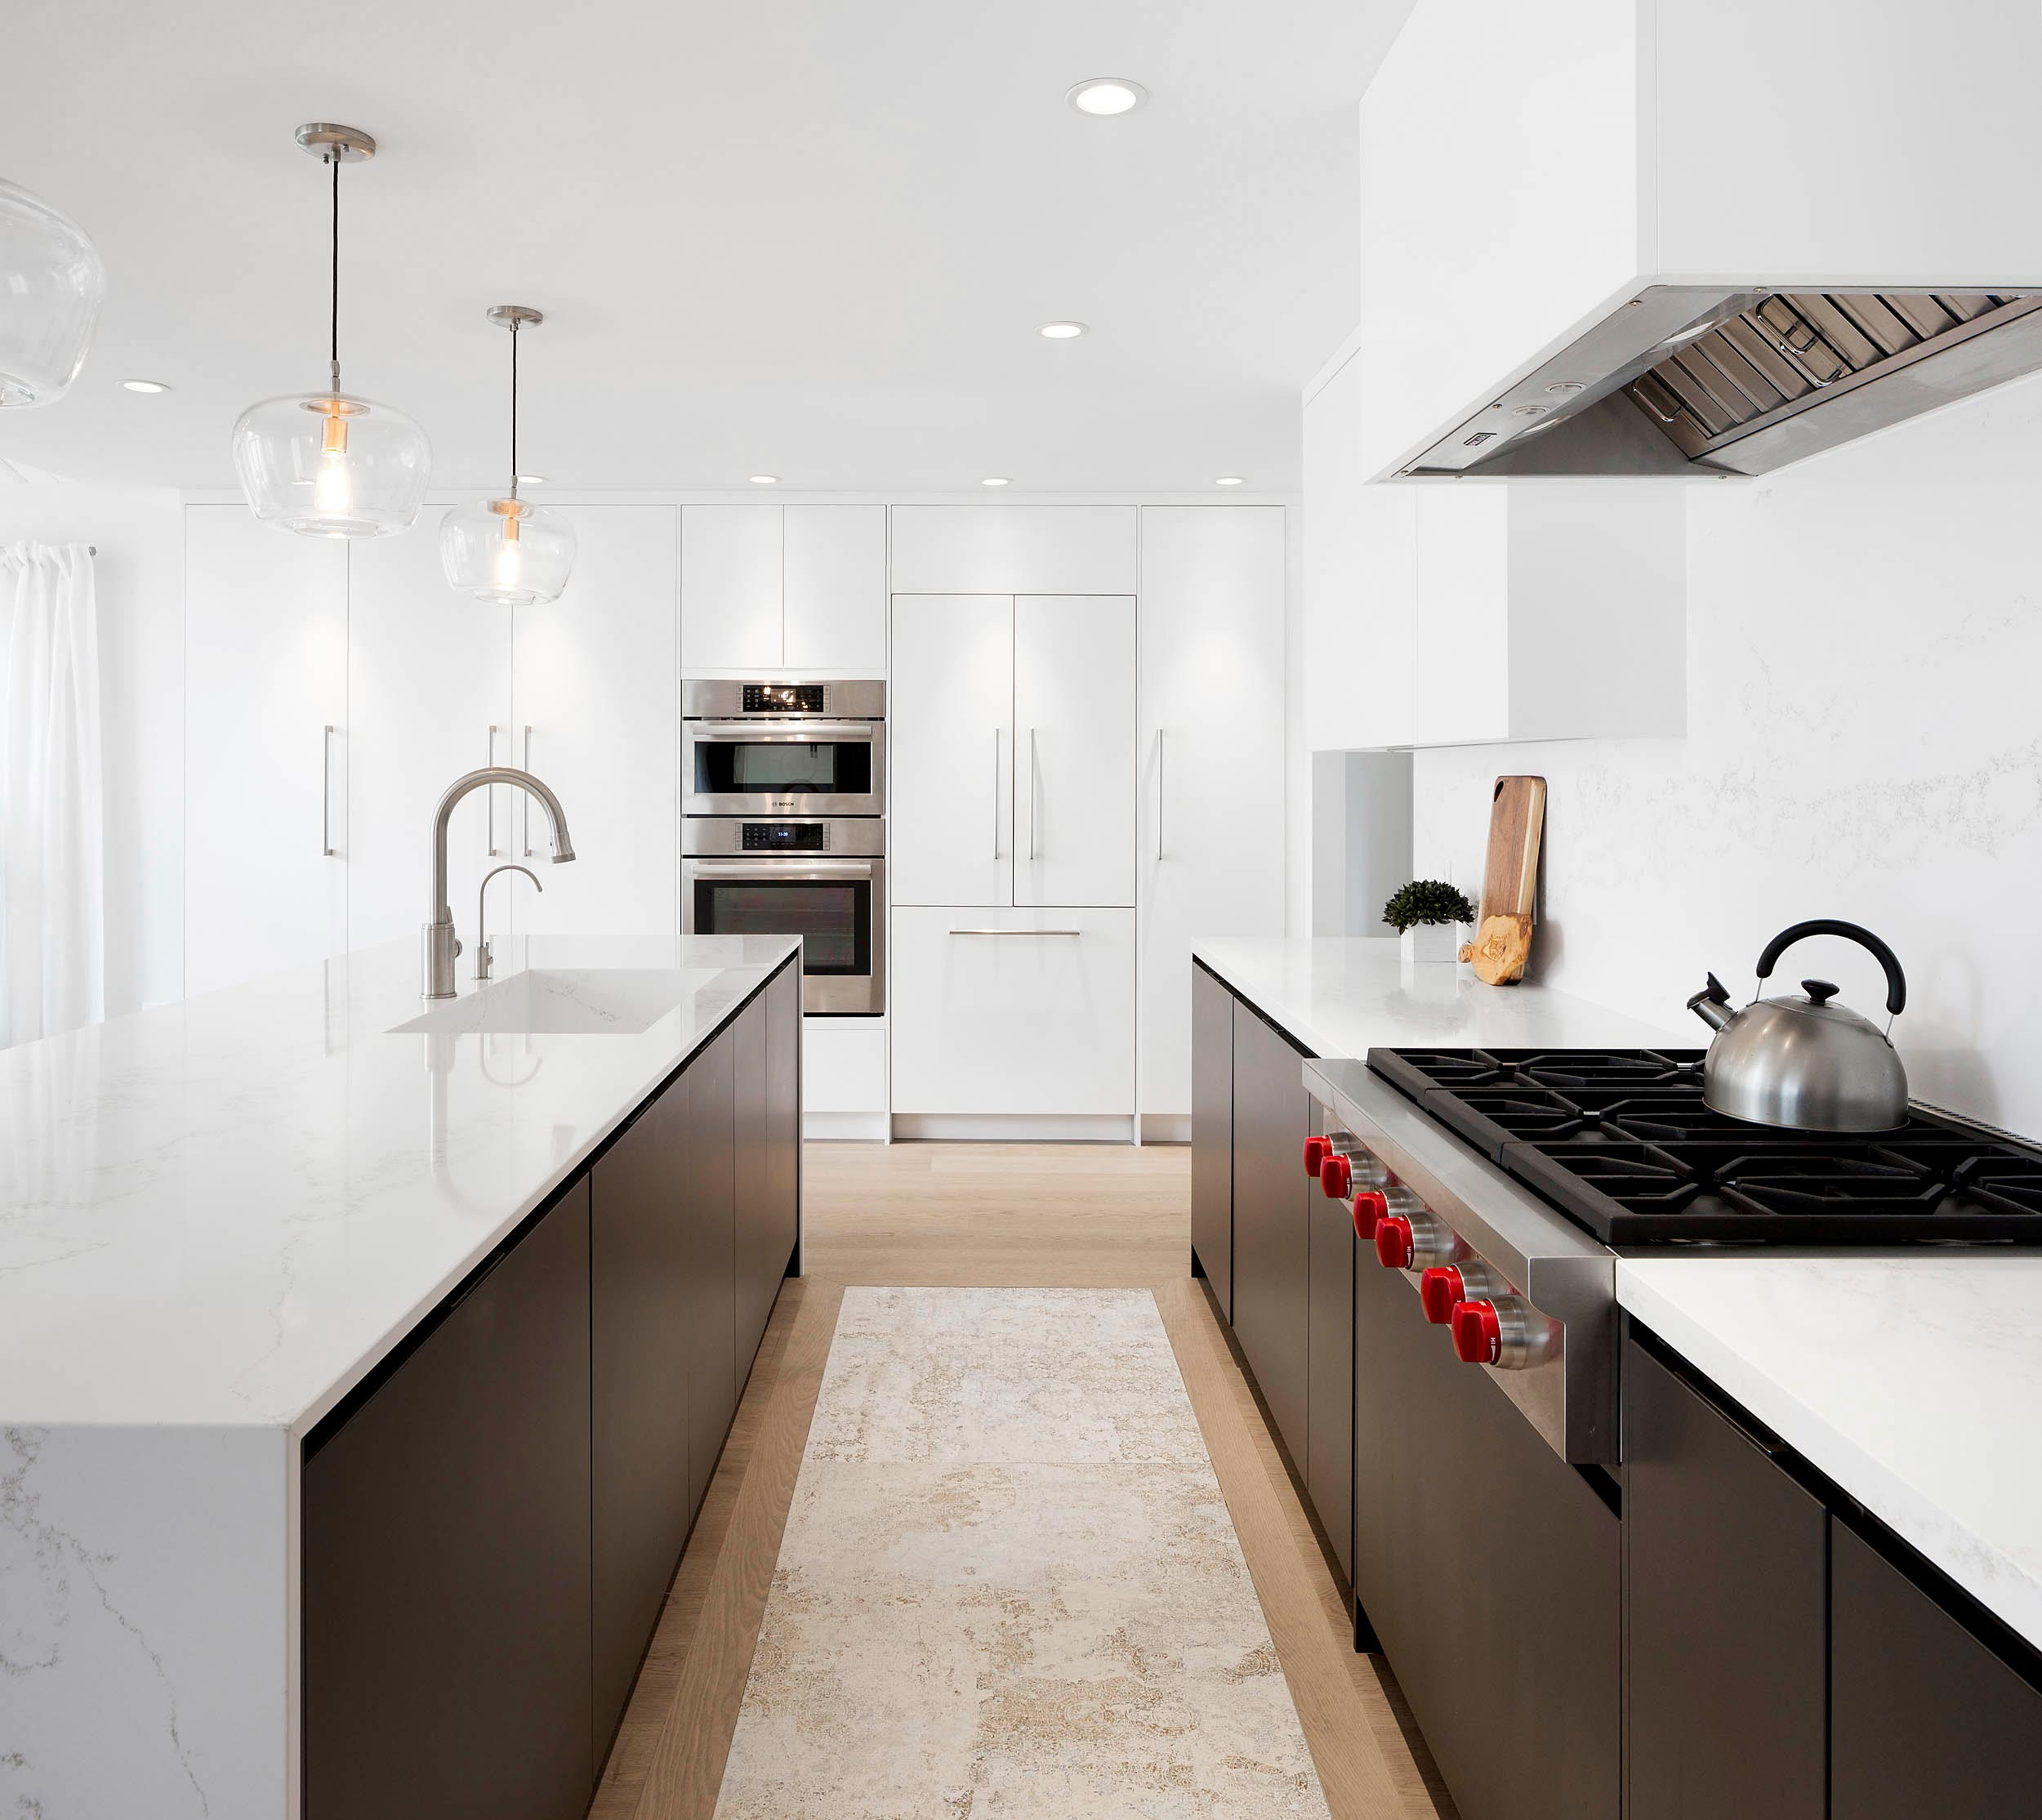 Modern Interior Photography of Kitchen by Danielle Campbell Design